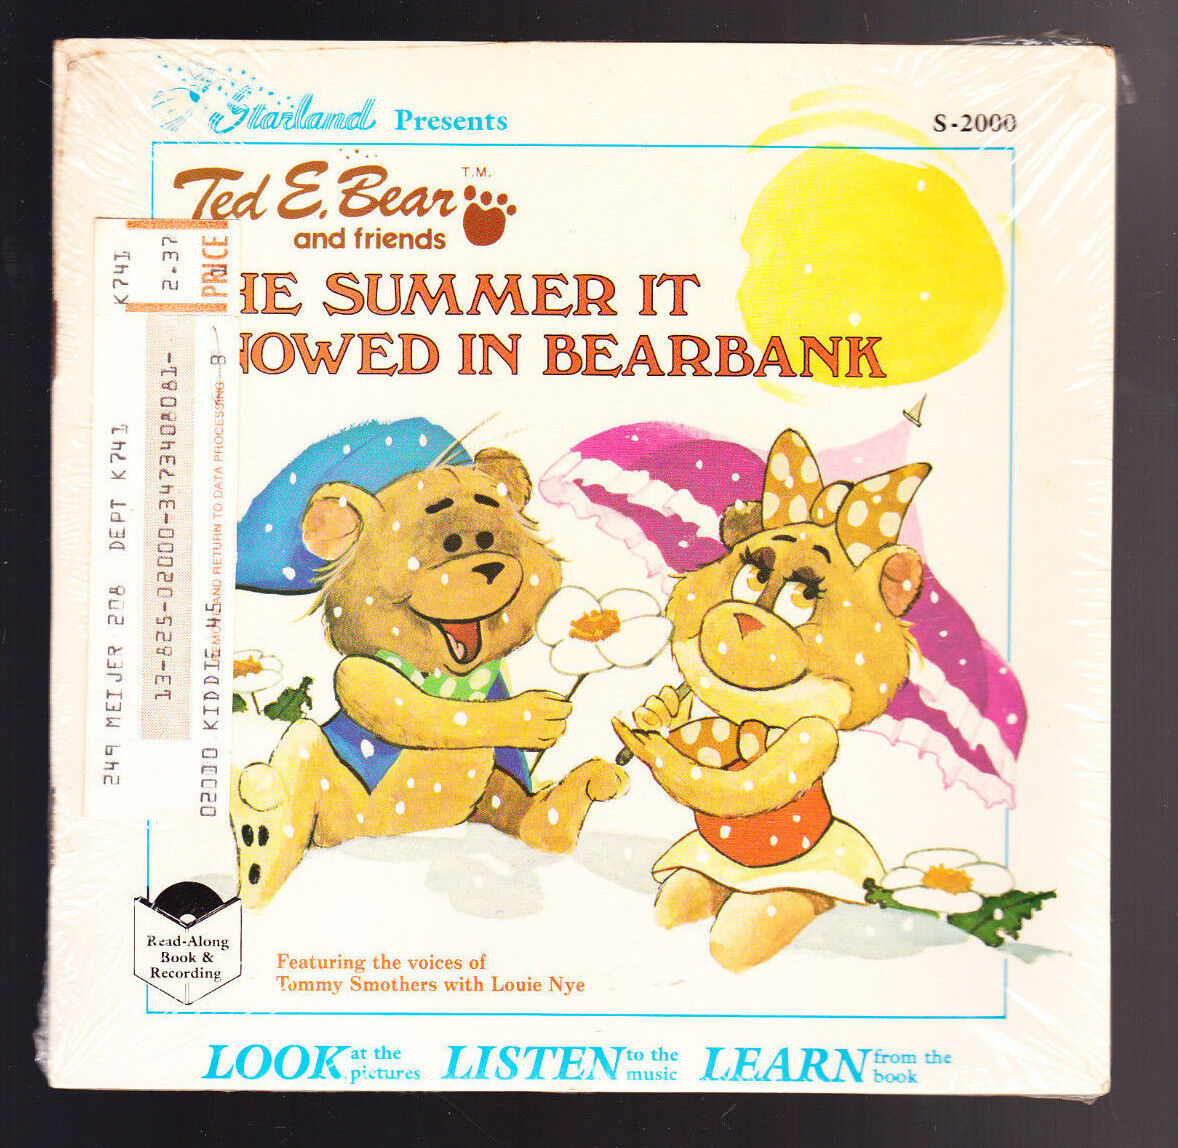 31 LOT STARLAND TED E BEAR READ ALONG BOOK + RECORD SNOWED IN BEARBANK IN SPACE